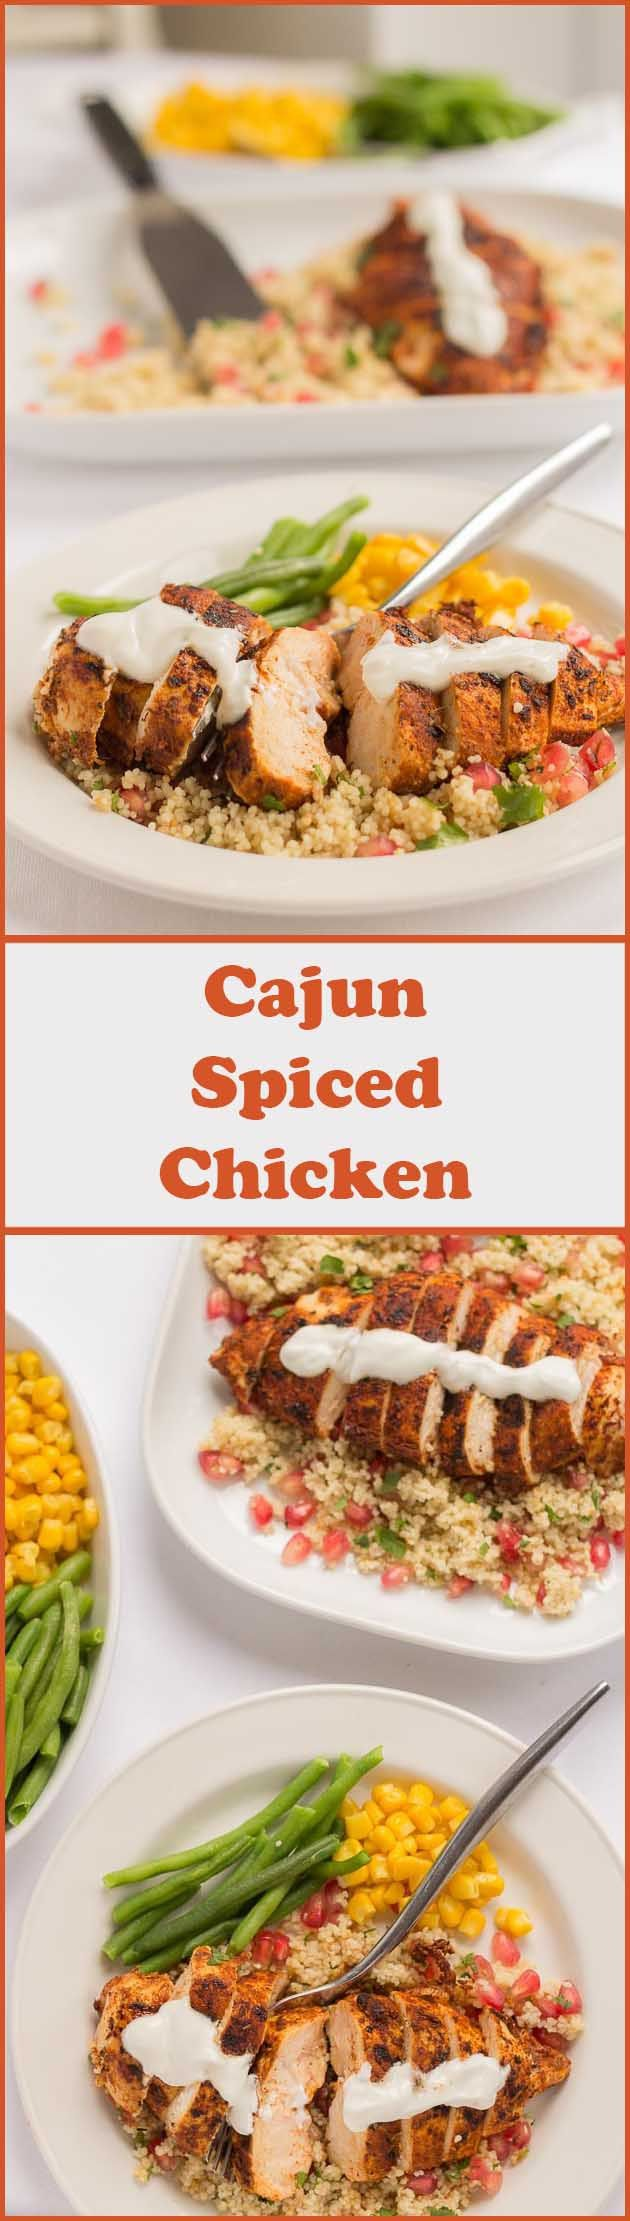 Weeknight dinners just became quicker with this tasty cajun spiced chicken recipe. An easy to prepare full meal made from basic kitchen cupboard spices and a mouth-watering pomegranate couscous accompaniment. Healthy, delicious, filling and best still, ready to be served in just 30 minutes.